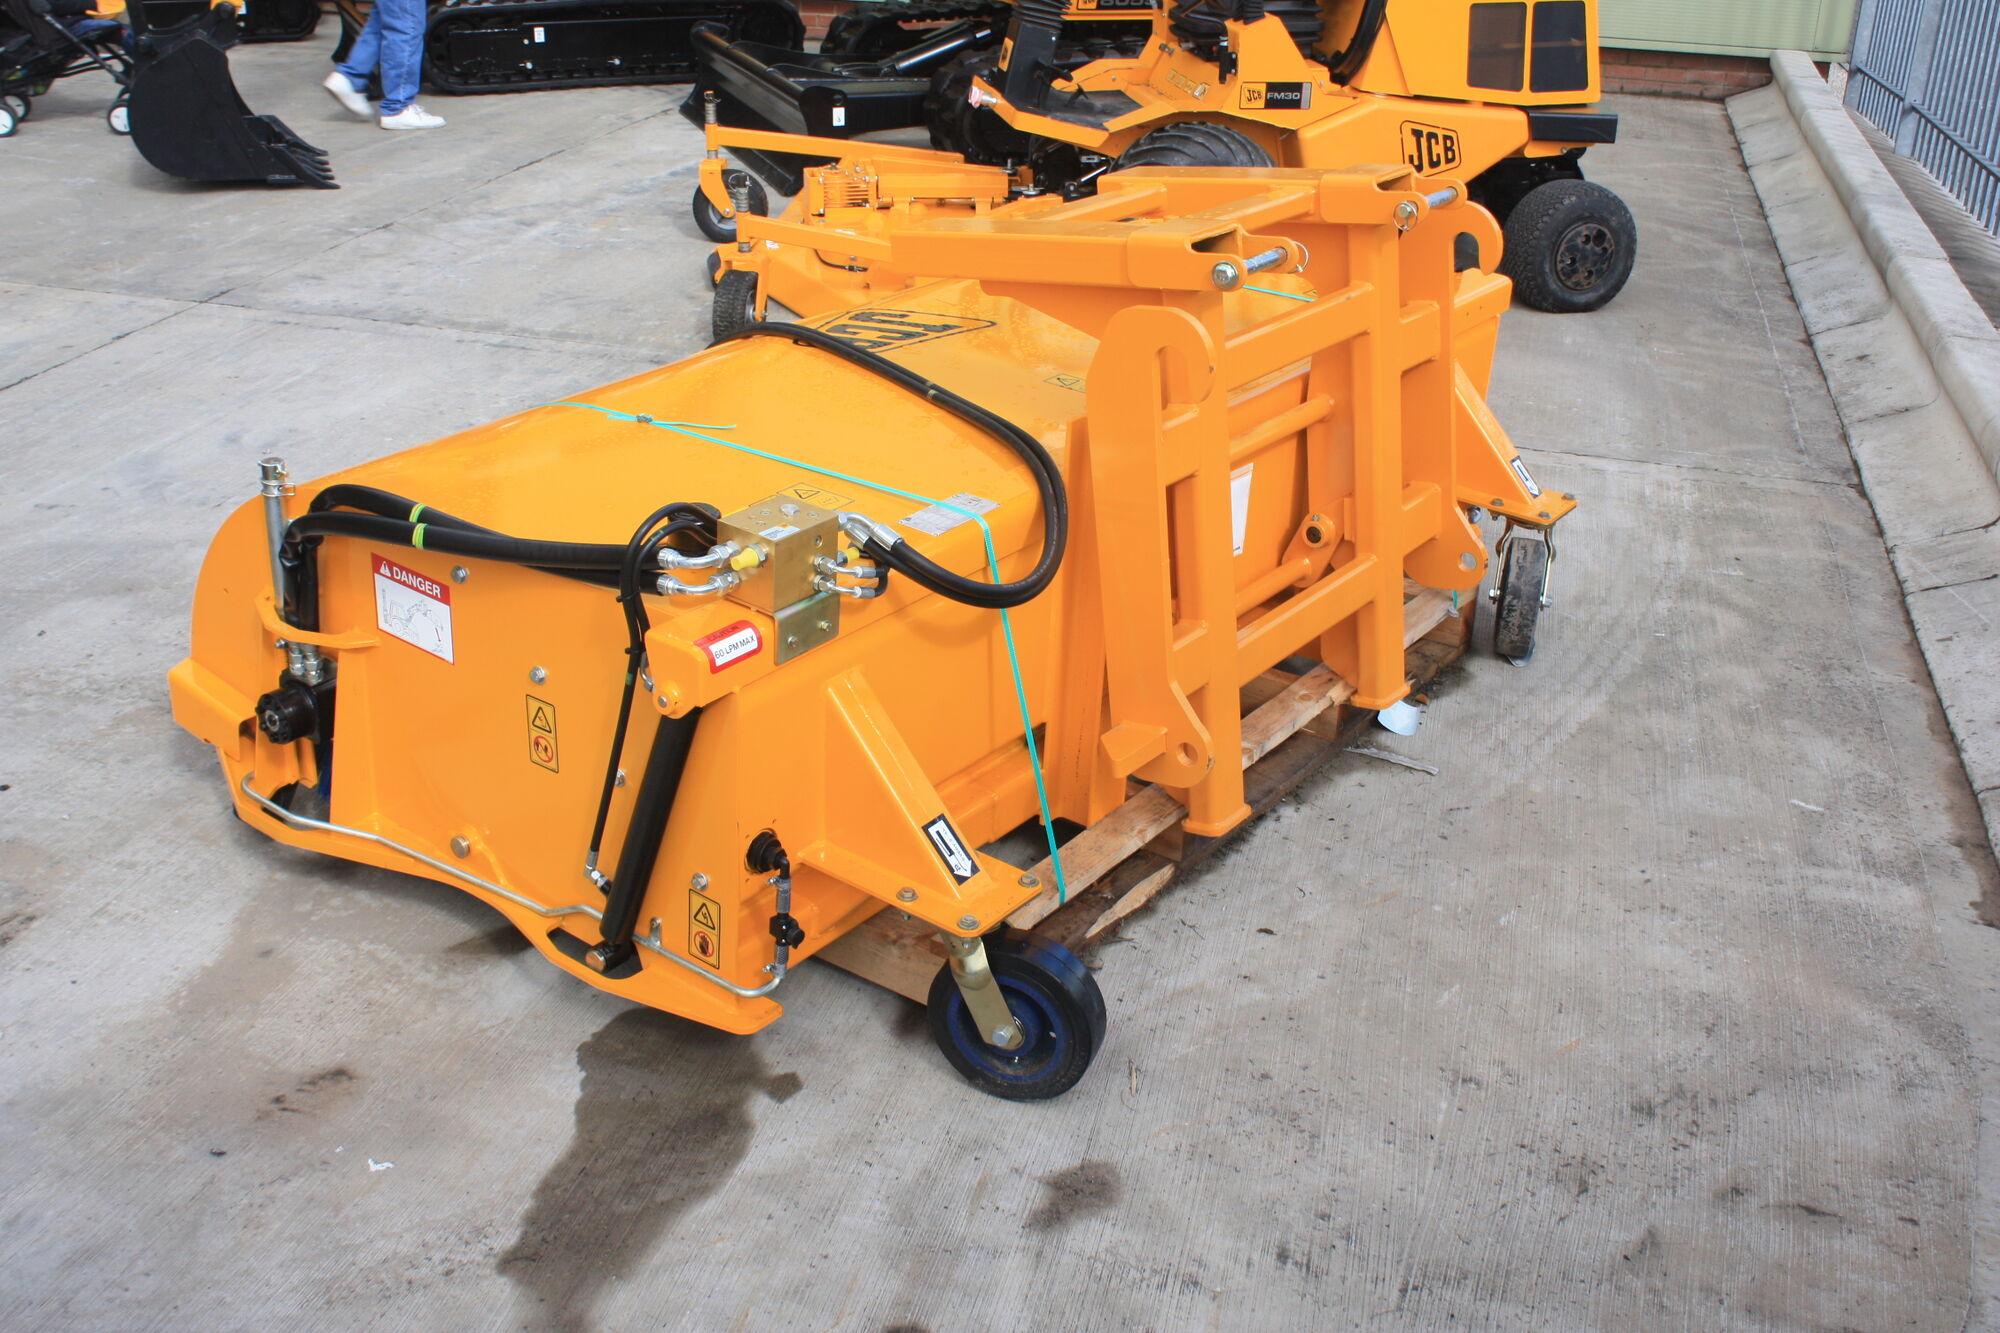 Sweeper Brush Tractor Amp Construction Plant Wiki Fandom